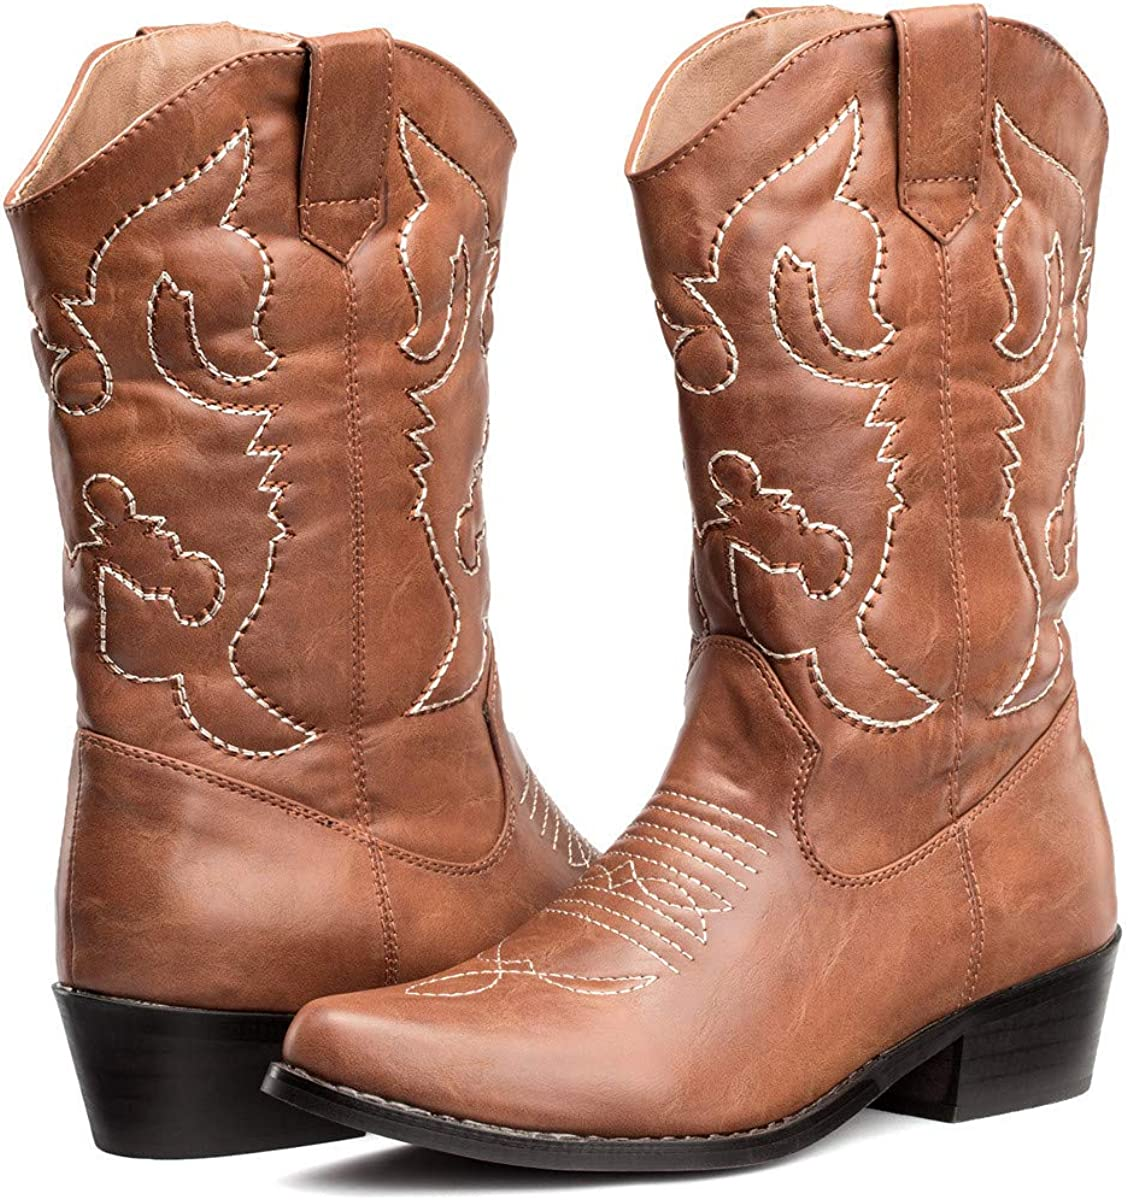 Womens Pointed Toe Embroidered Mid Calf Western Cowboy Boots for Country Wedding